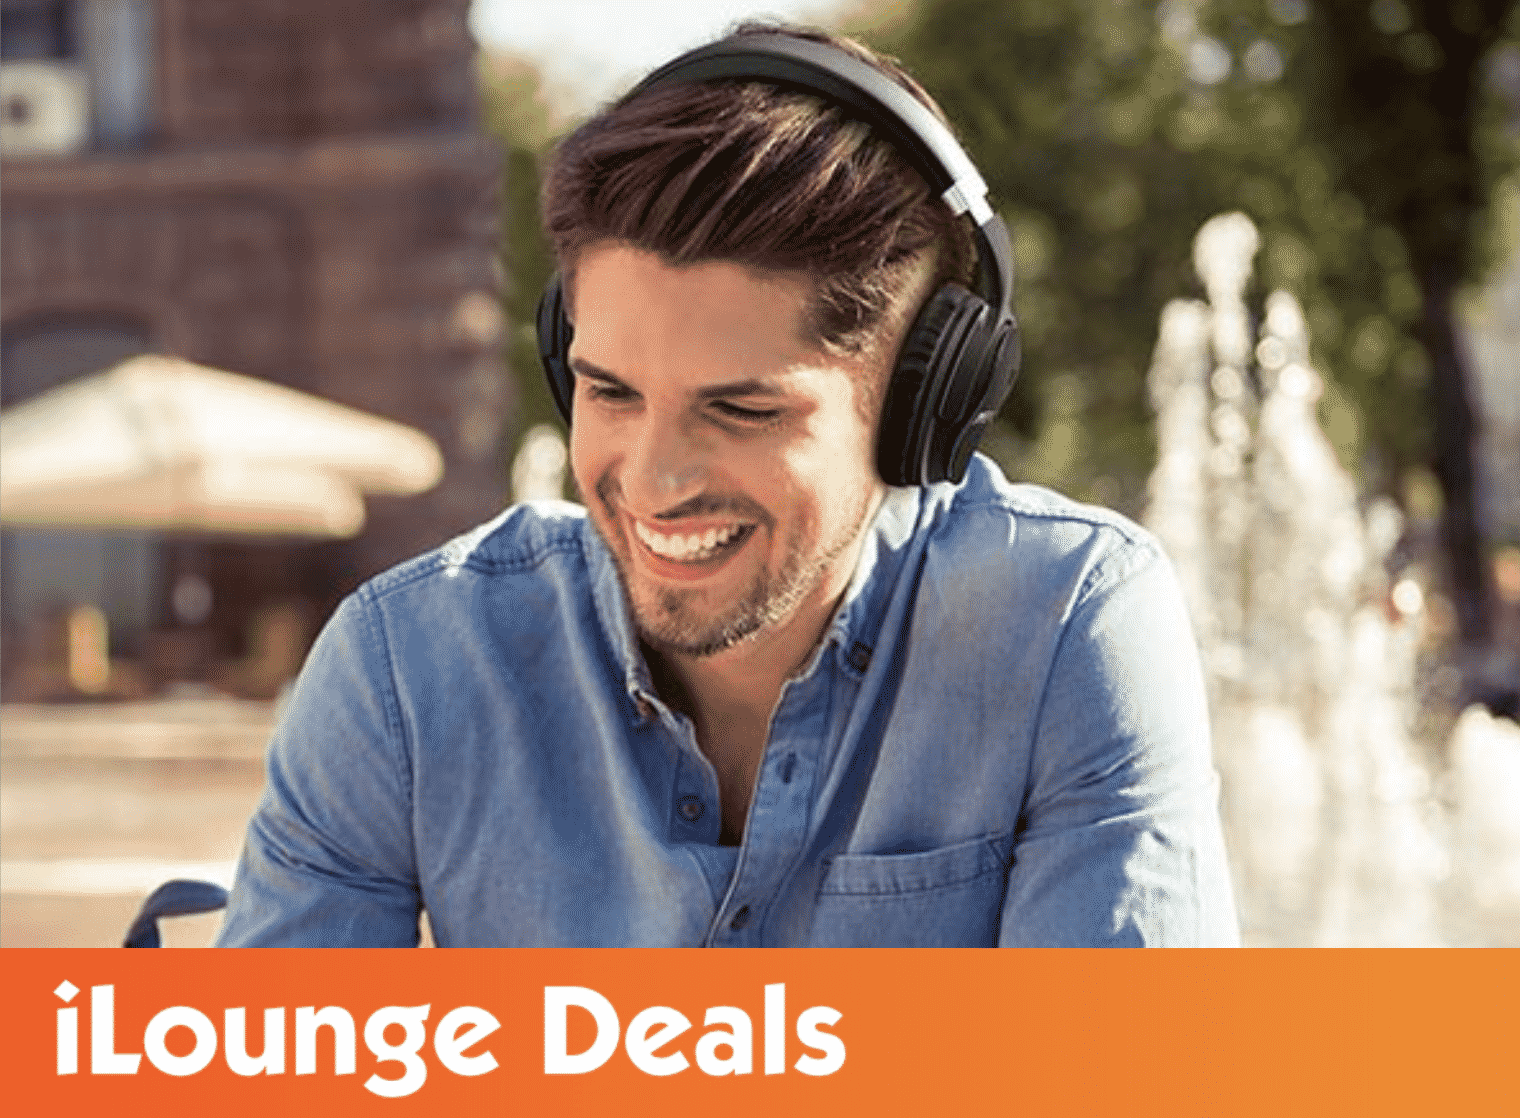 MPOW X4.0 Over-Ear wireless active noise-cancelling headphones are 33% off